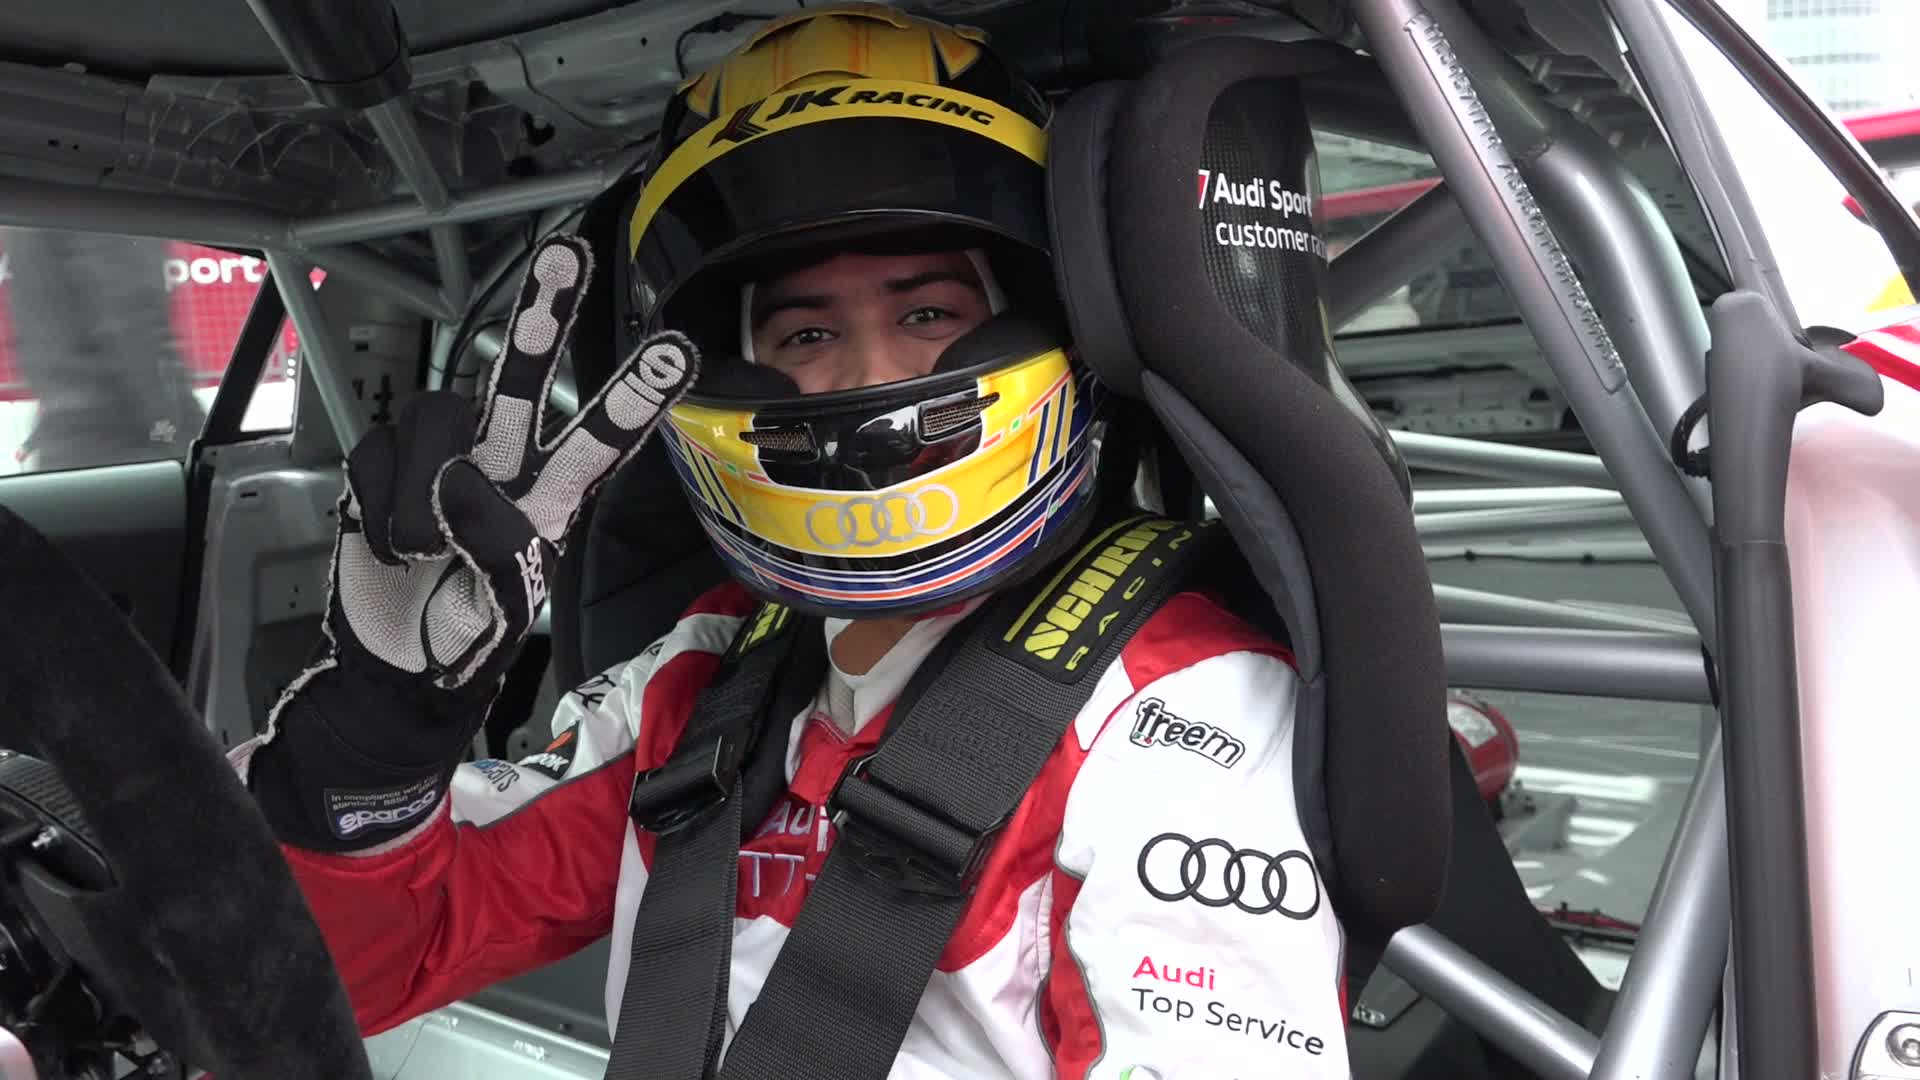 60 Seconds of Audi Sport 86/2015 - TT Cup Nürburgring, Race 1